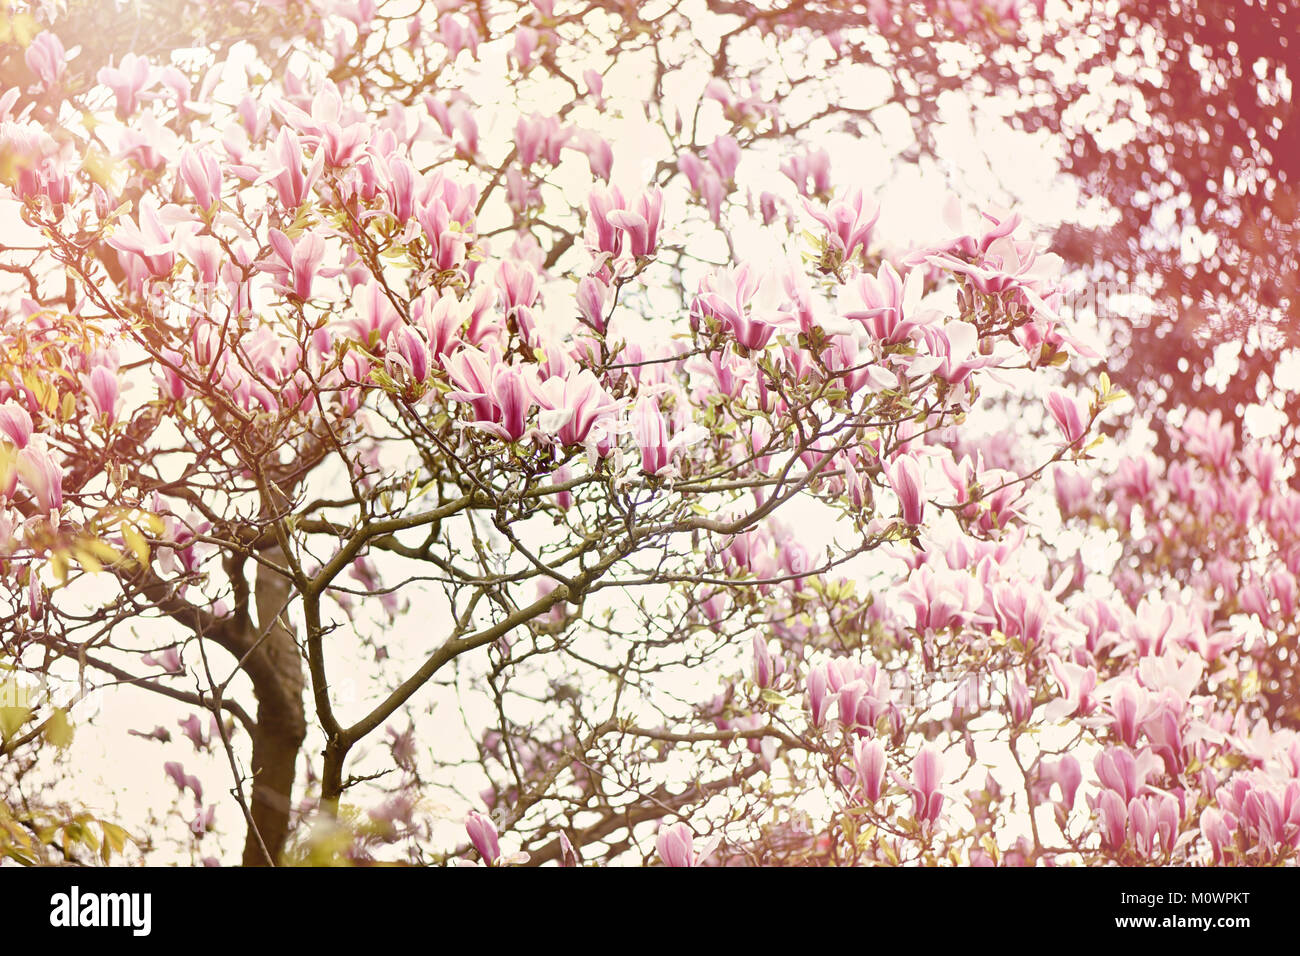 Spring flowering magnolia tree with pink flowers in hazy sunshine spring flowering magnolia tree with pink flowers in hazy sunshine mightylinksfo